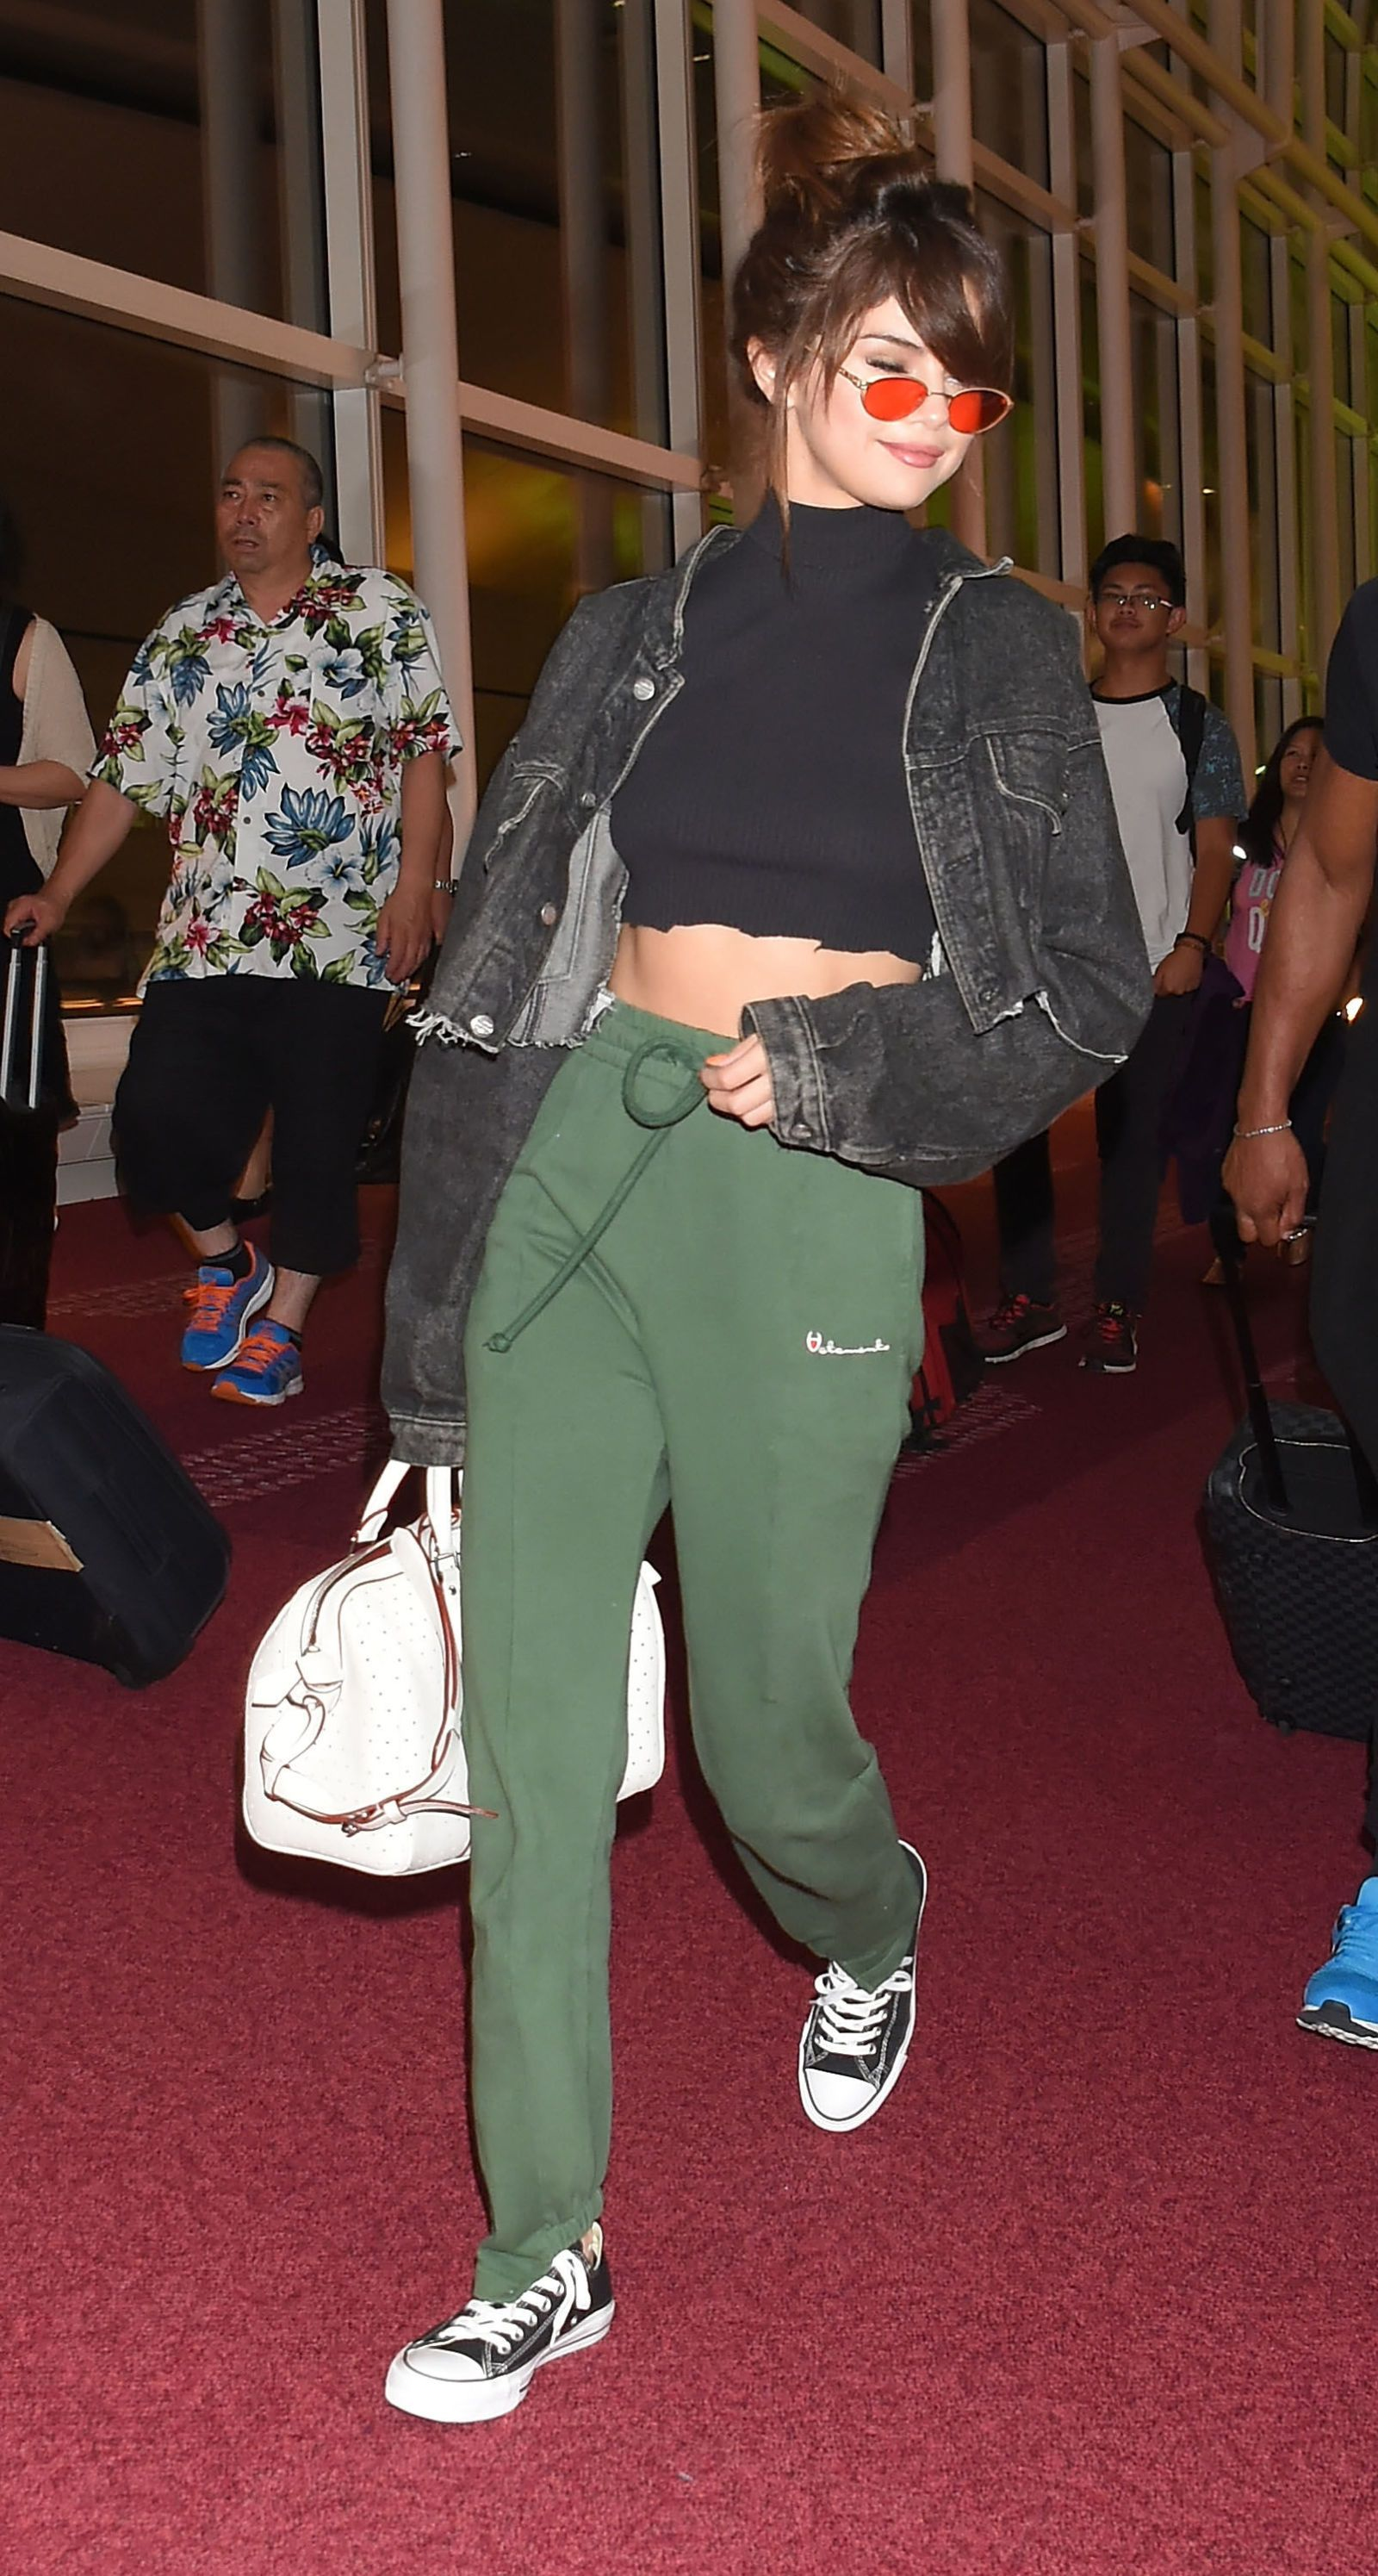 fa7ed441ff37 Street style hero Selena Gomez arrived in Tokyo this week wearing a crop  top, jean jacket, and travel-friendly green sweatpants.